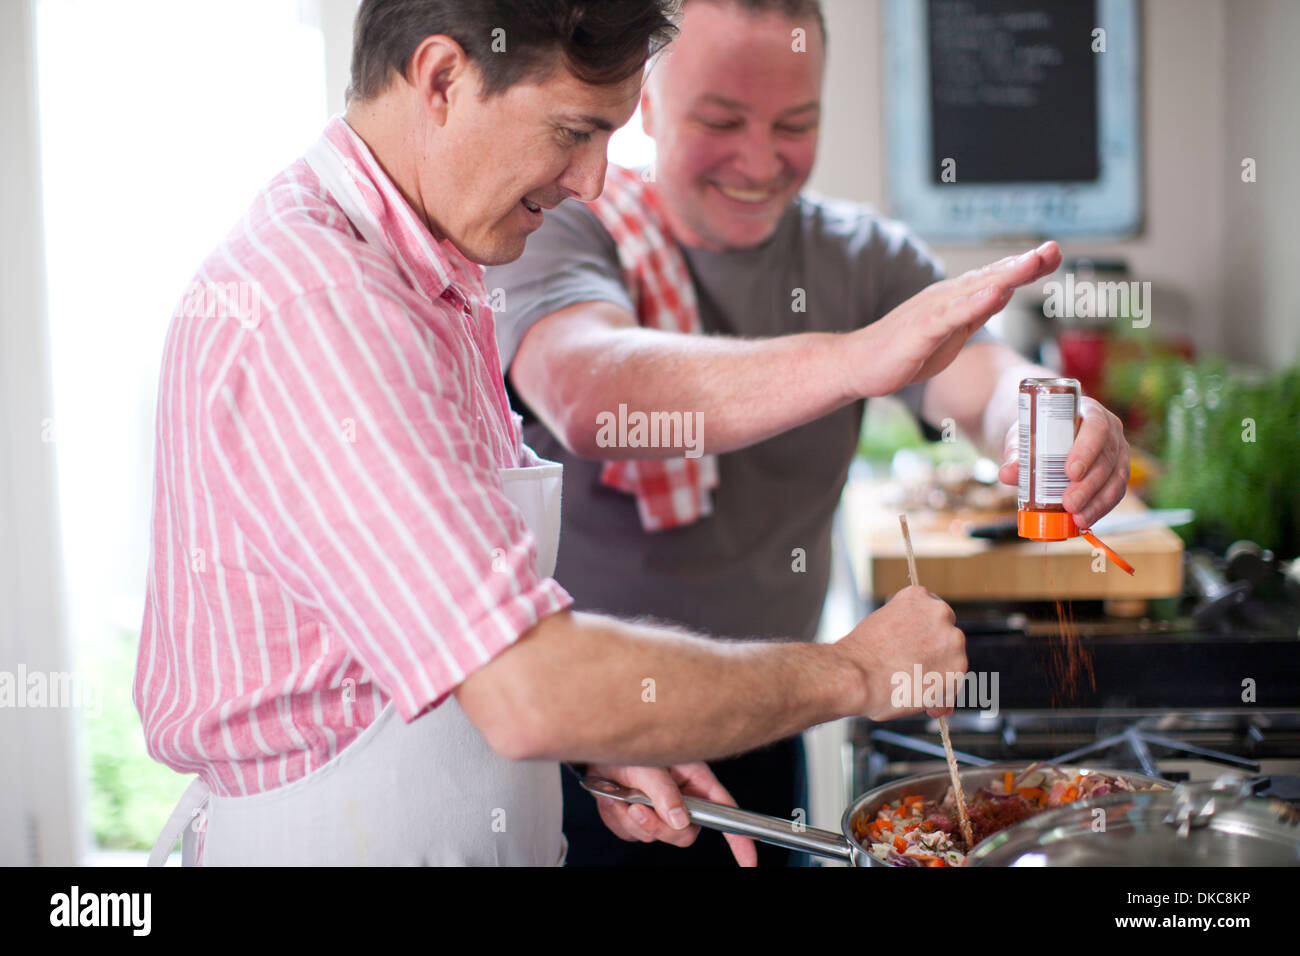 Mature men cooking, one stirring and one adding spices - Stock Image